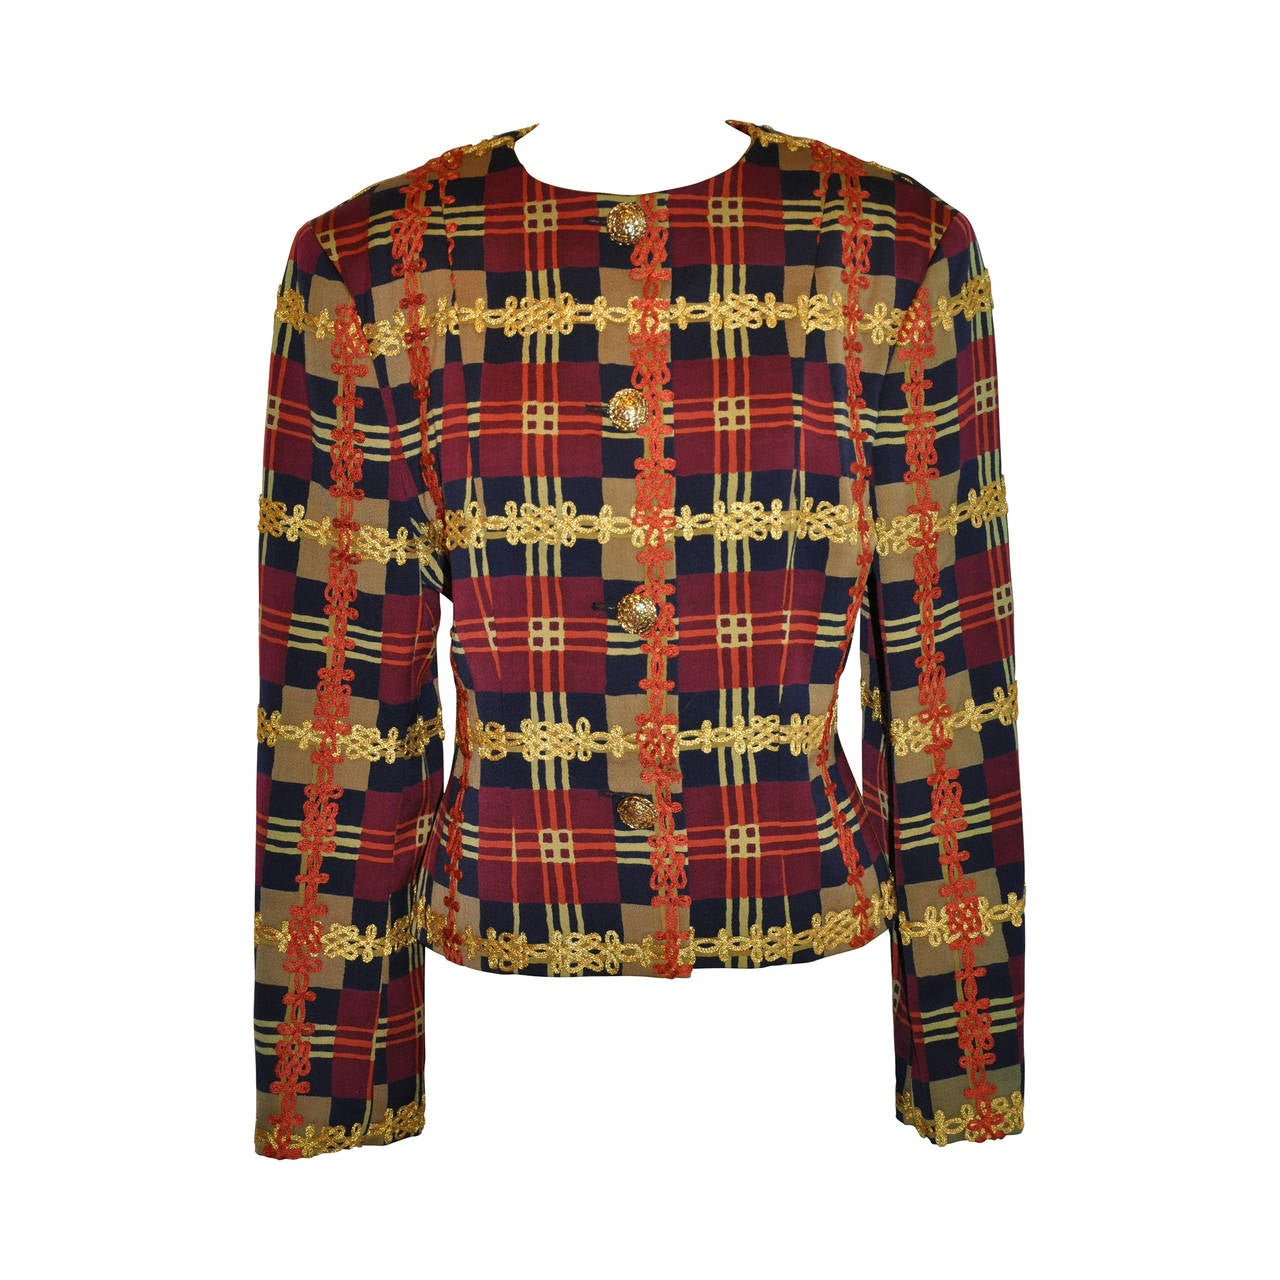 christian lacroix multi color multi plaid cropped jacket for sale at 1stdibs. Black Bedroom Furniture Sets. Home Design Ideas